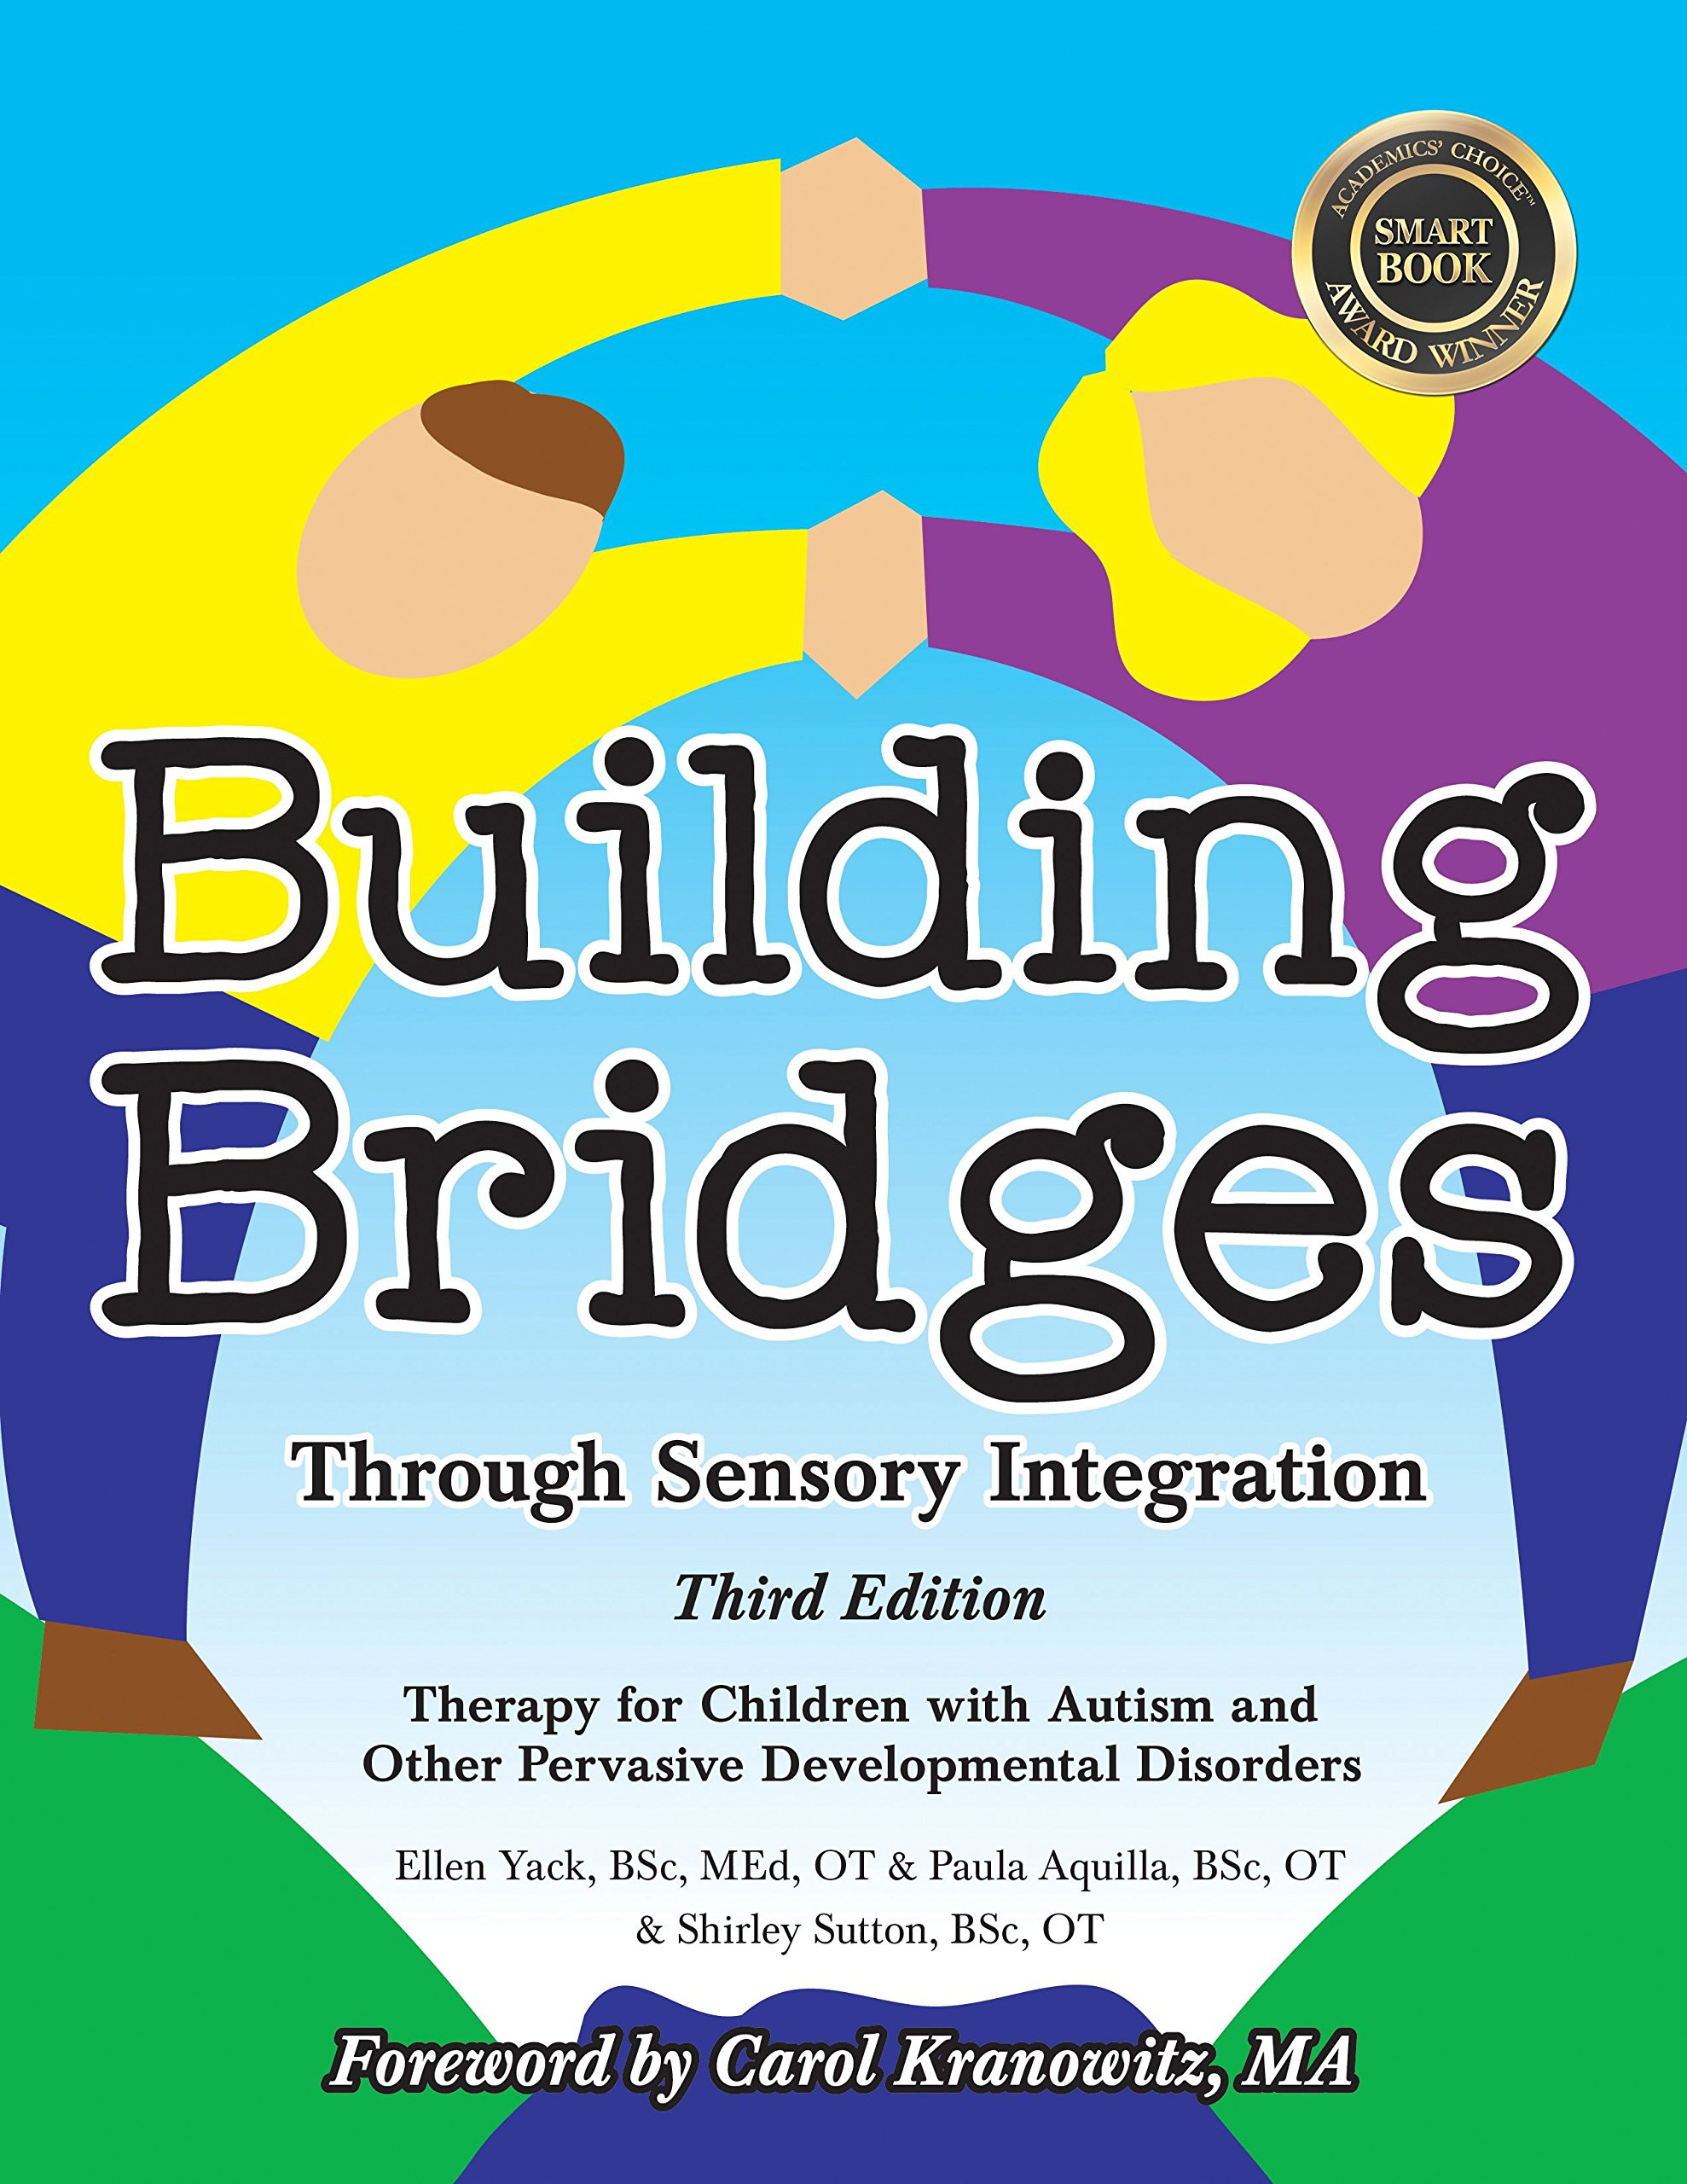 The Third Edition of Building Bridges Through Sensory Integration - Co-Authored by Ellen YackWinner of the Summer 2015 Academics' Choice Smart Book Award and Learning Magazine's Teachers' Choice Award.This book offers a combination of theory and strategies. It is a perfect tool for those working with young children, but also broad enough to be adapted for older children and adults. Building Bridges provides creative techniques and useful tips while offering innovative strategies and practical advice for dealing with everyday challenges, including managing behaviors, improving muscle tone, developing social skills, selecting diets, and more.